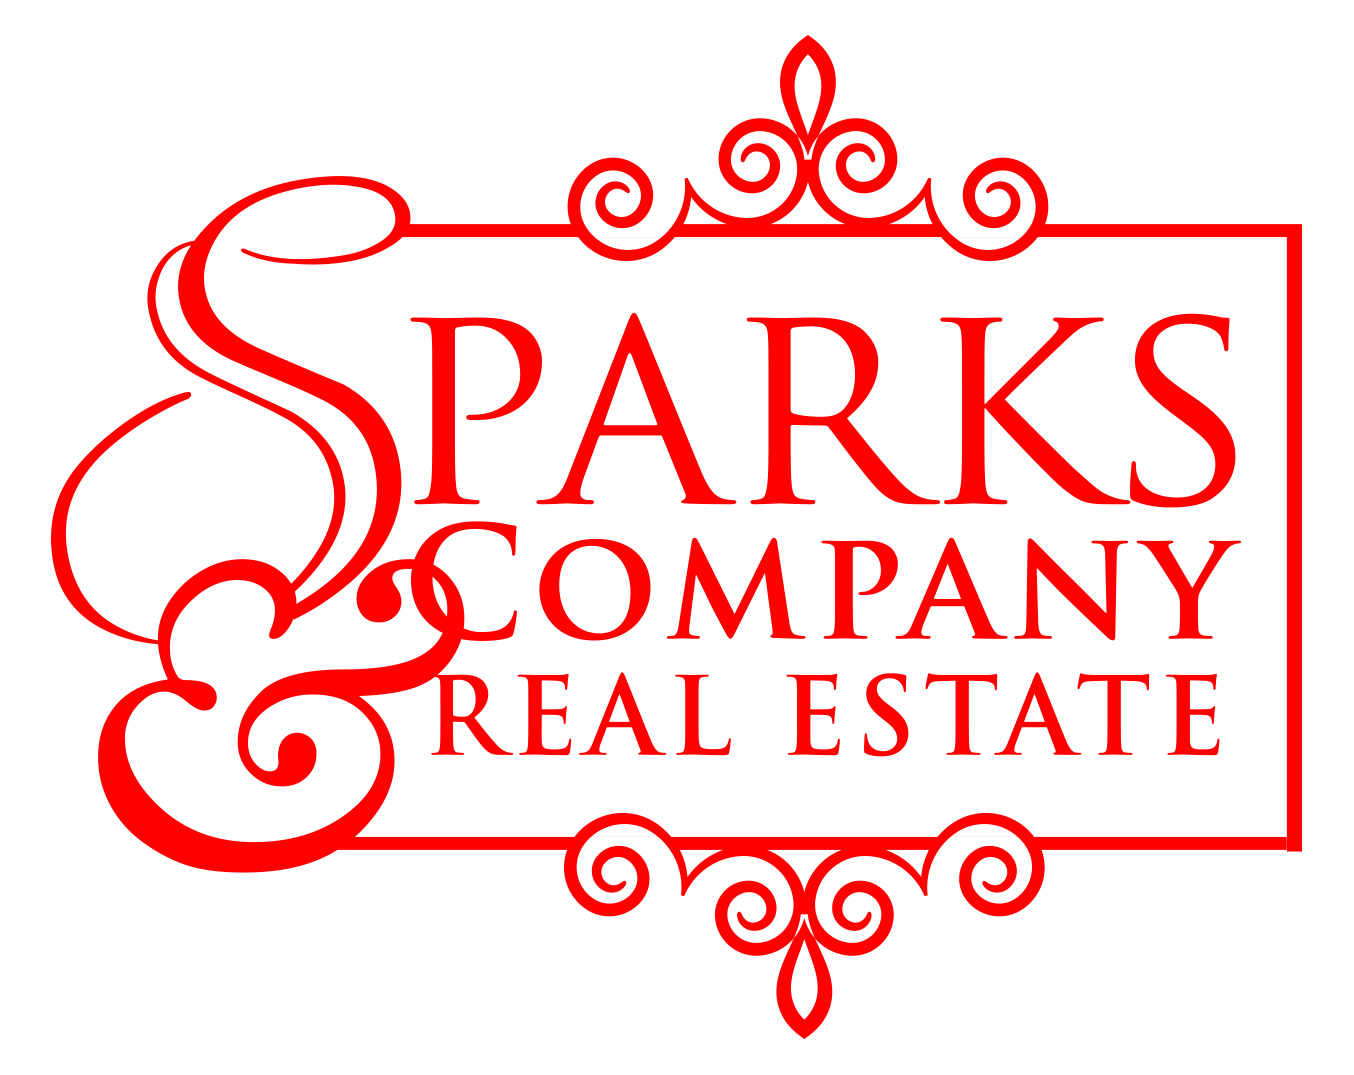 Sparks & Company Real Estate